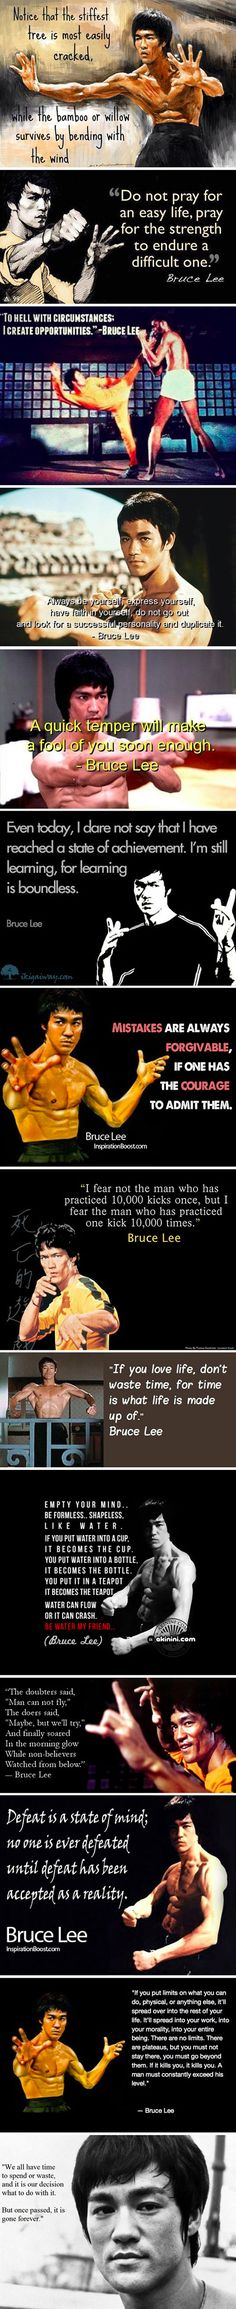 Just a little Bruce Lee...